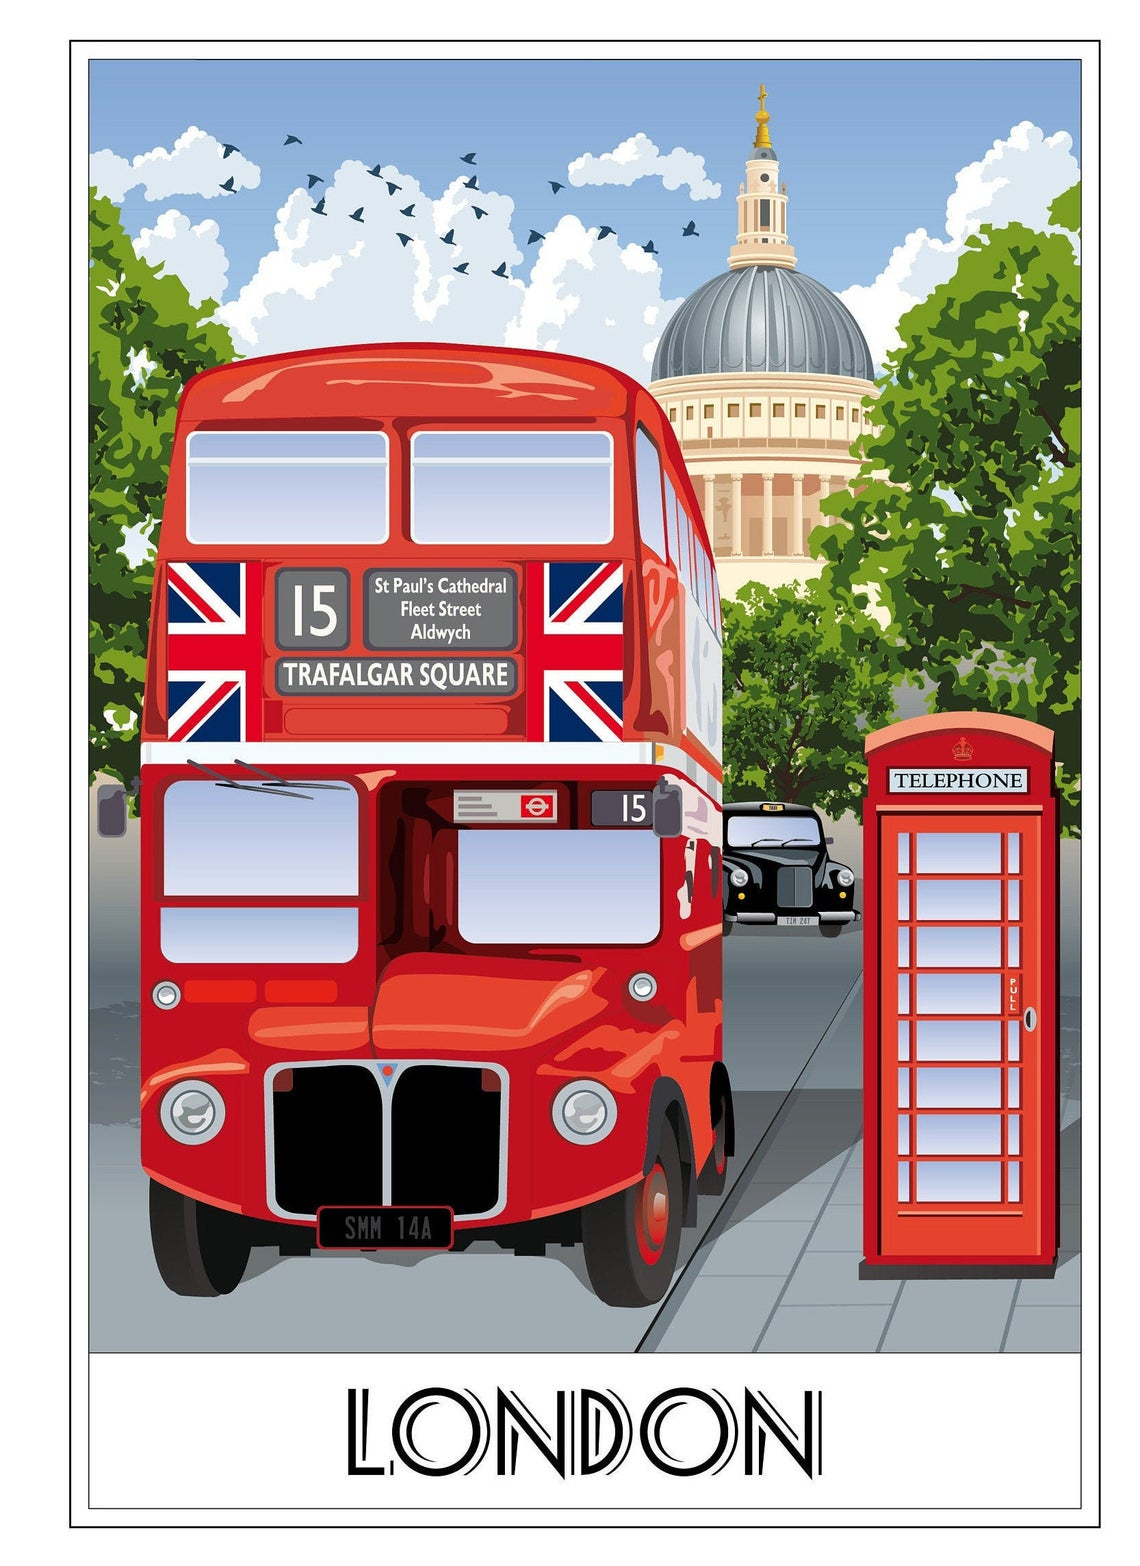 London, Bus, Routemaster, Taxi, Telephone Box, St Paul's Cathedral